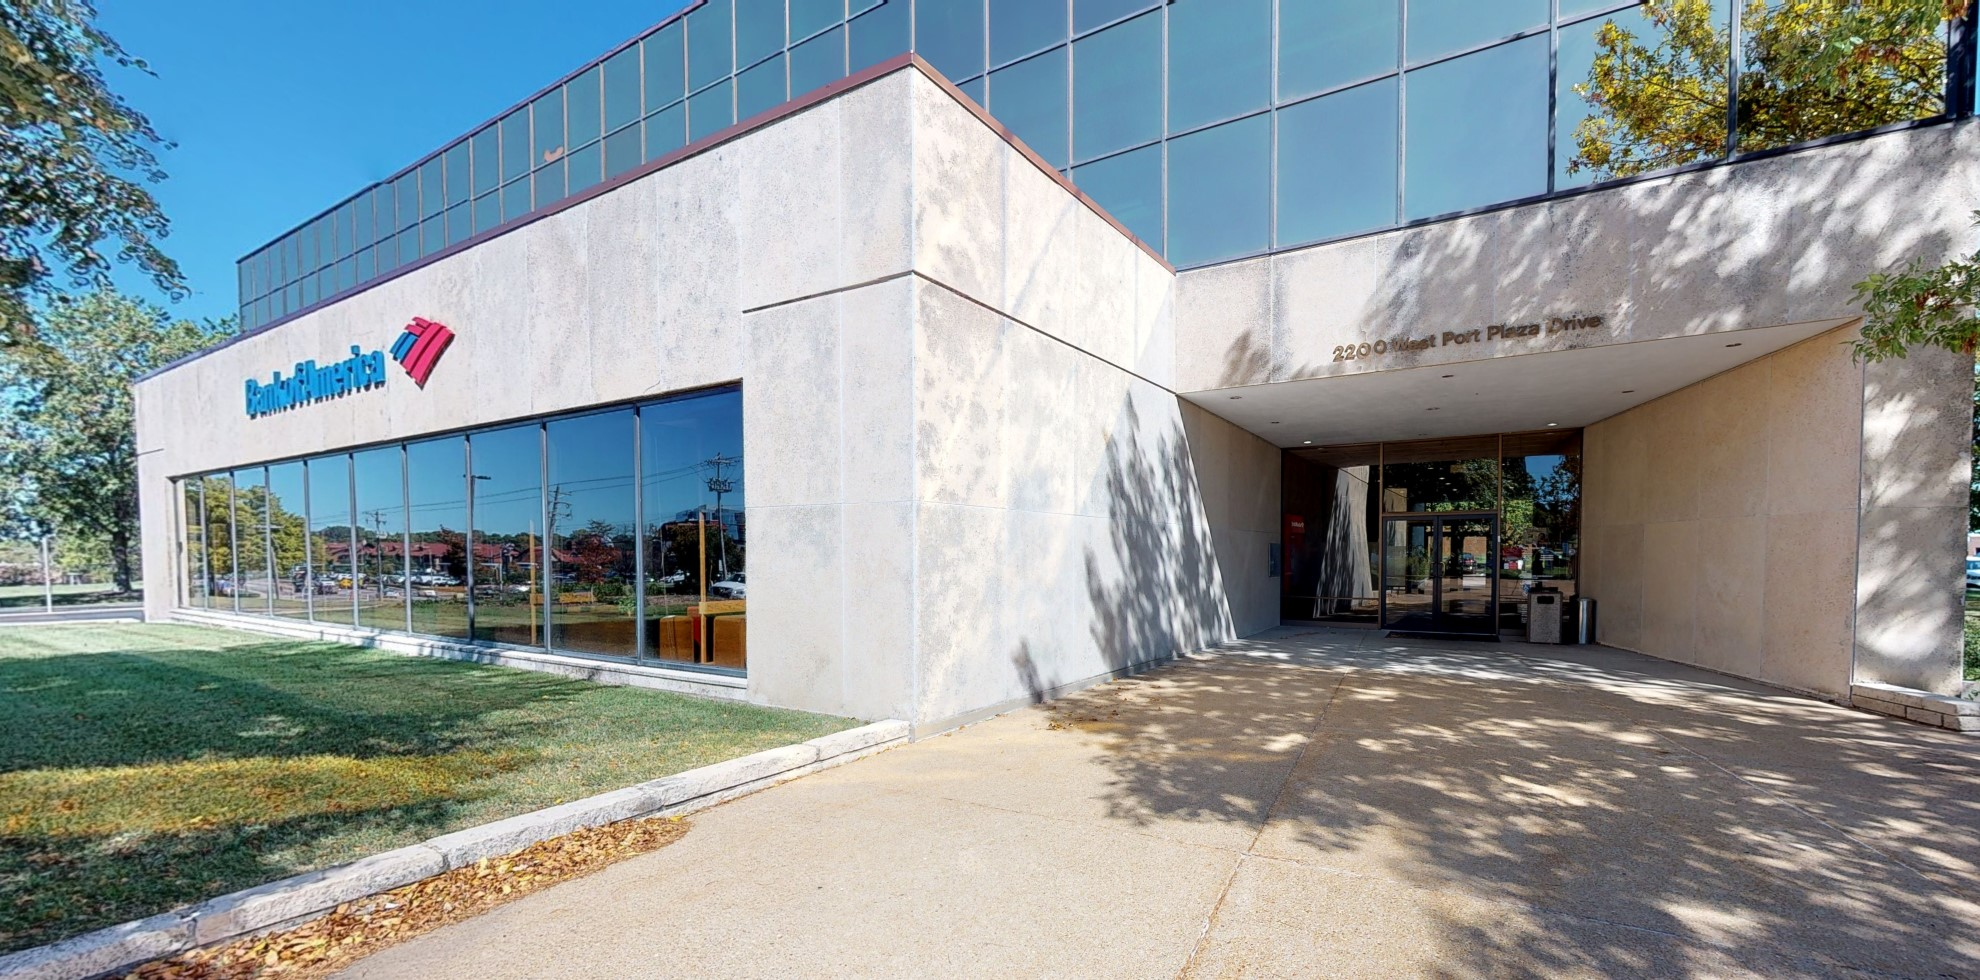 Bank of America financial center with drive-thru ATM | 2200 West Port Plaza Dr, Saint Louis, MO 63146